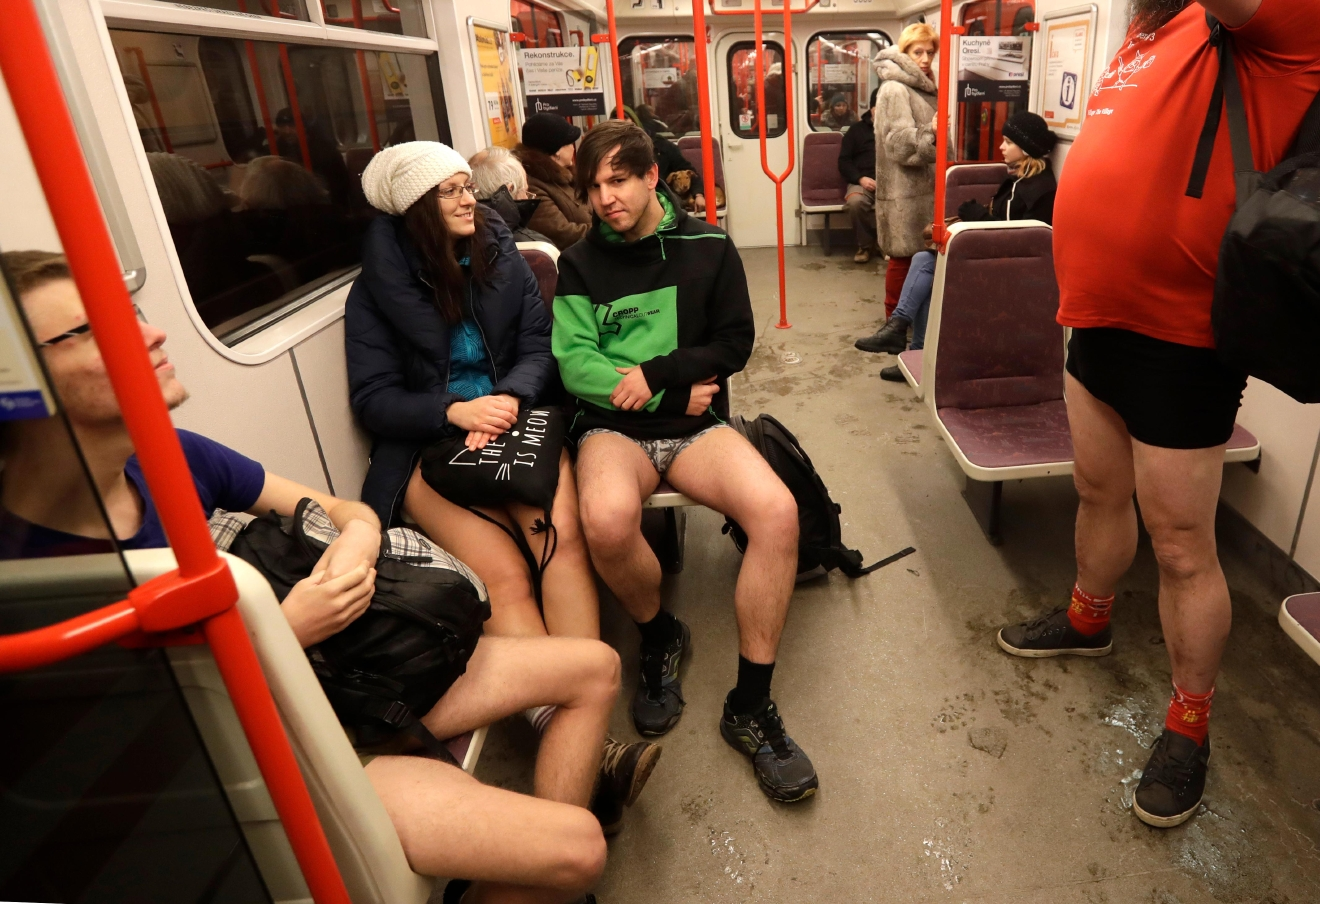 Passengers take part in the No Pants Subway Ride in Prague, Czech Republic, Sunday, Jan. 8, 2017. The No Pants Subway Ride began in 2002 in New York as a stunt and has taken place in cities around the world since then. (AP Photo/Petr David Josek)